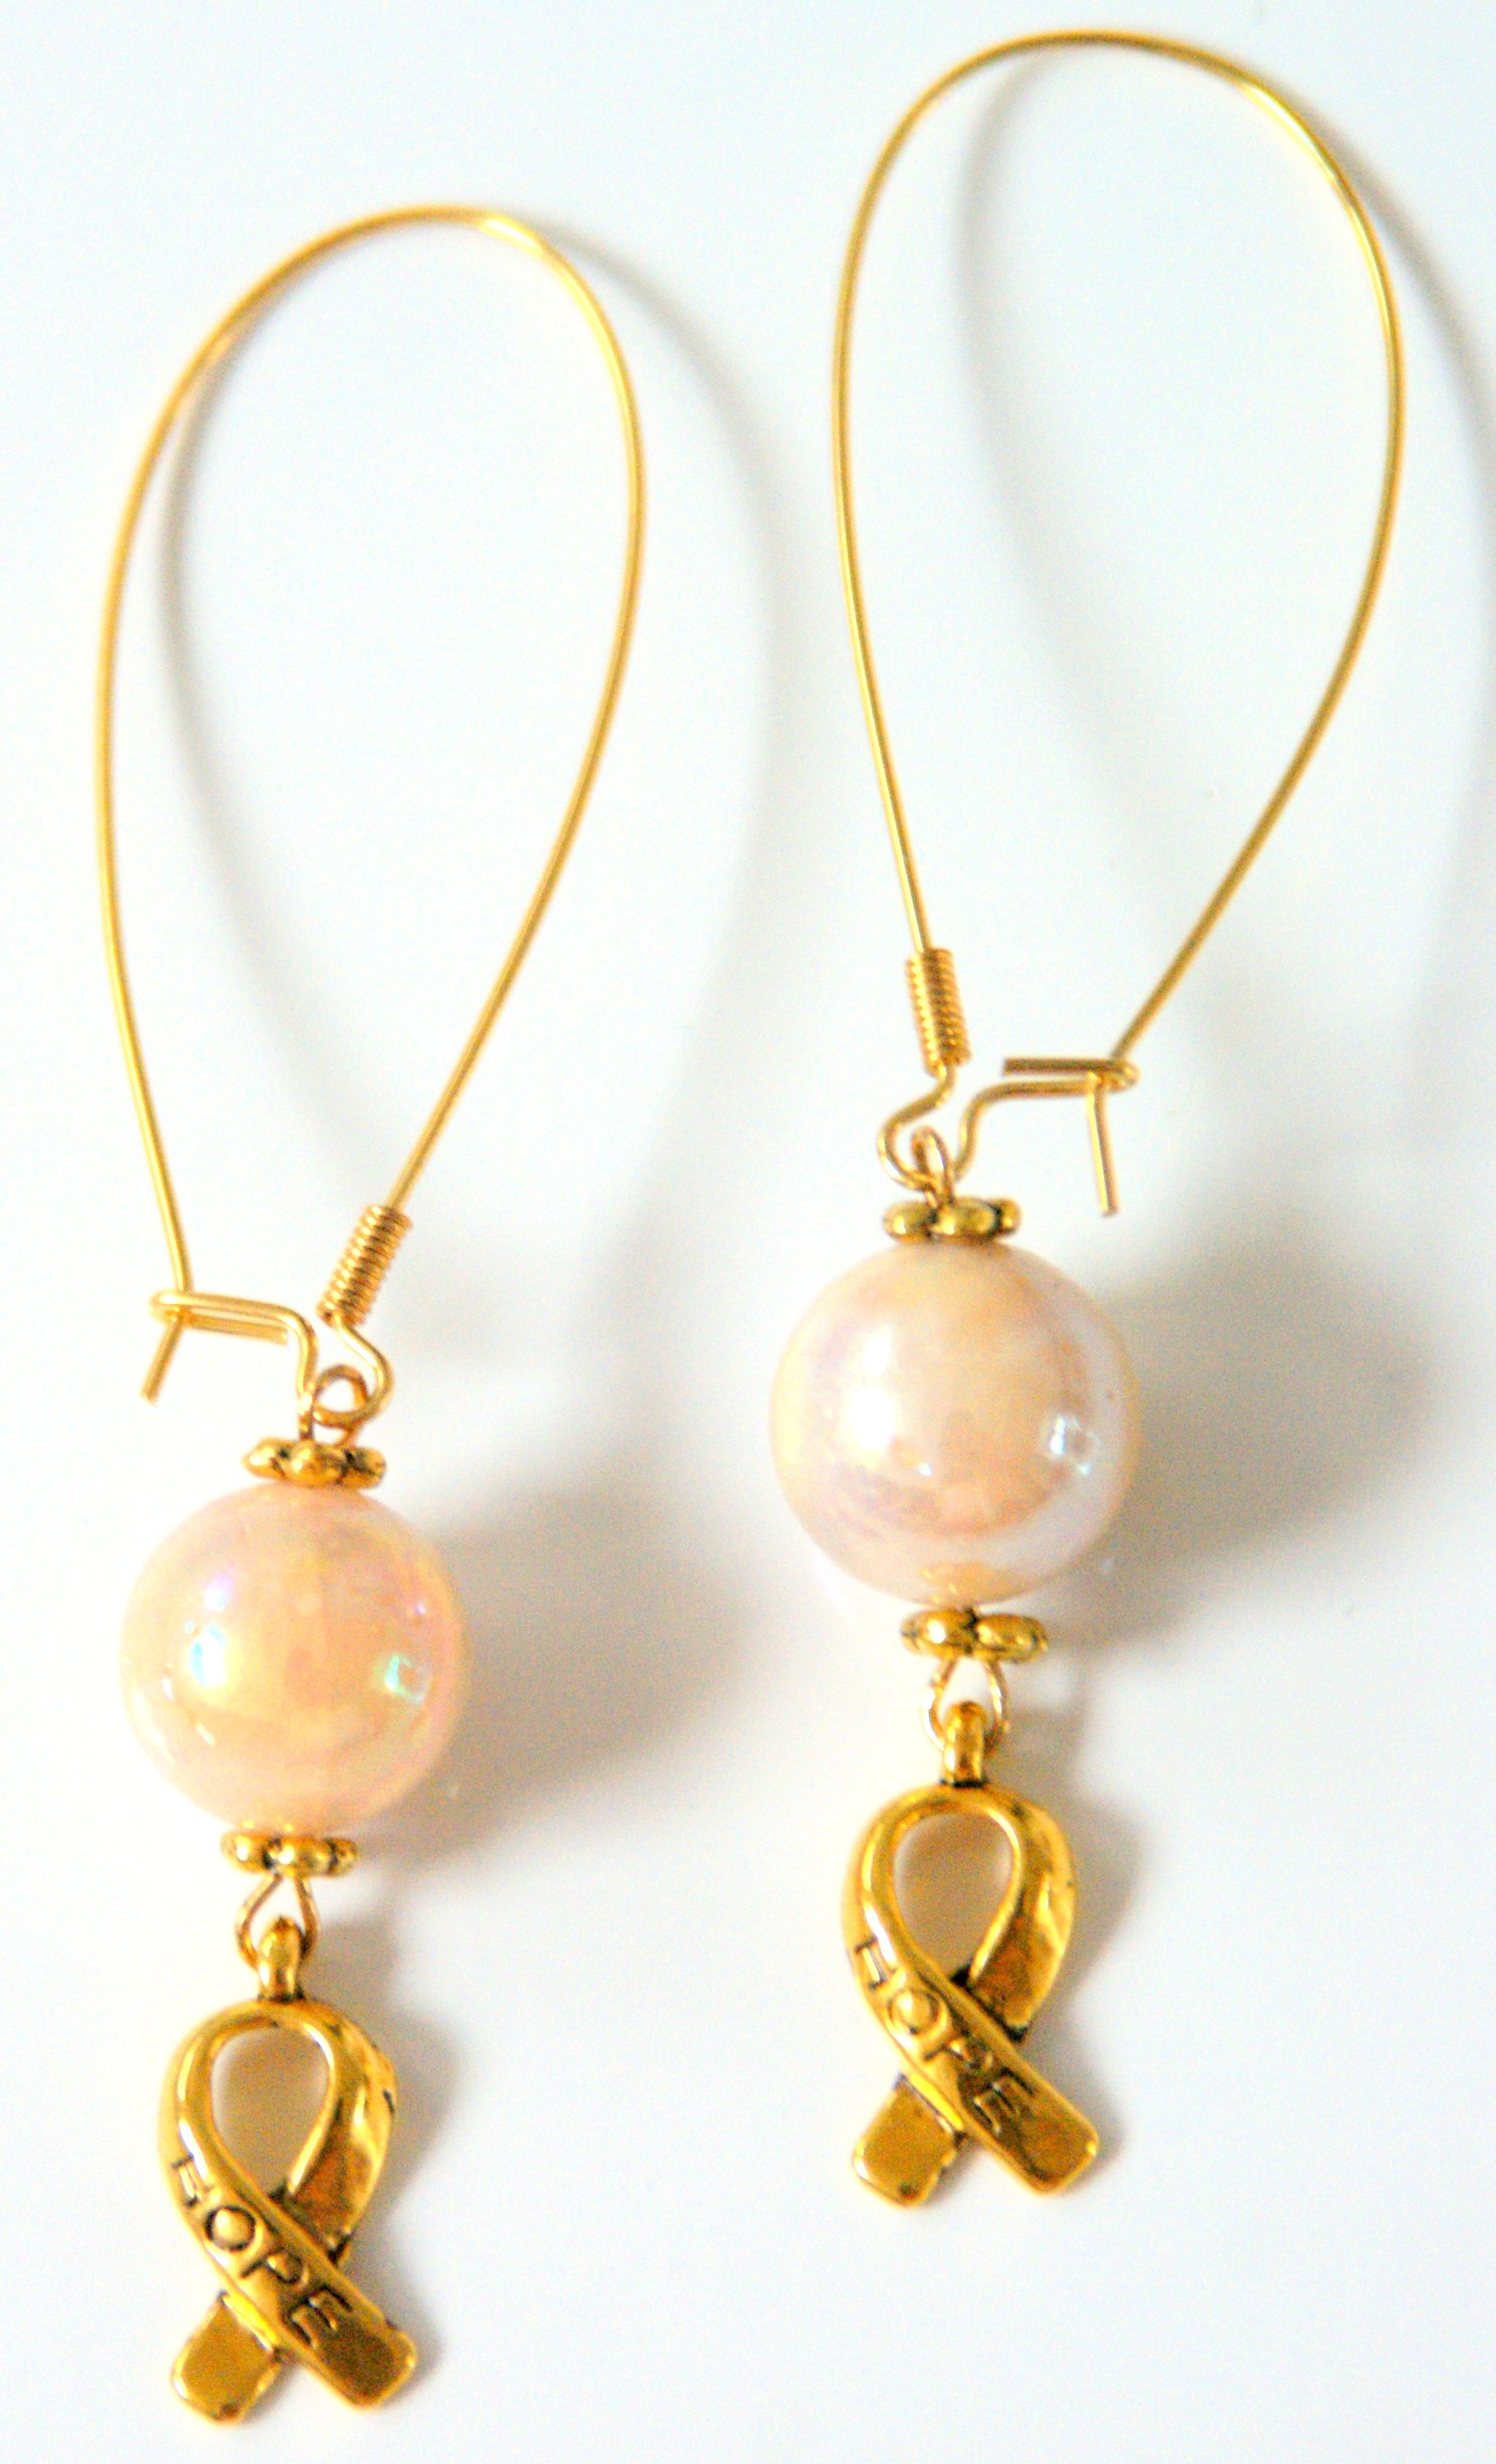 Beige & Gold oorbellen voor Pink Ribbon € 14,95 -> Jewellicious Designs doneert € 2,03 aan Pink Ribbon.